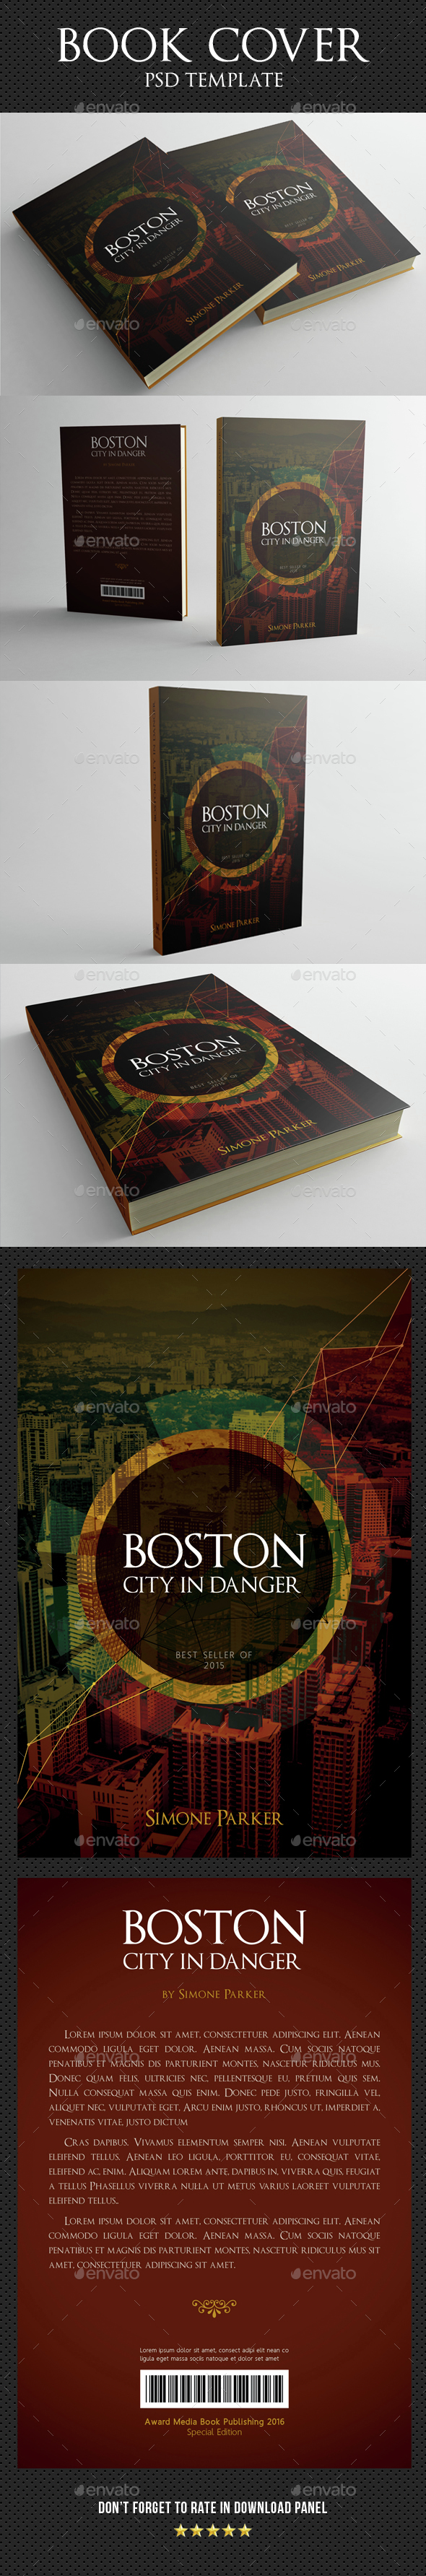 Book Cover Template 06 By Rapidgraf Graphicriver